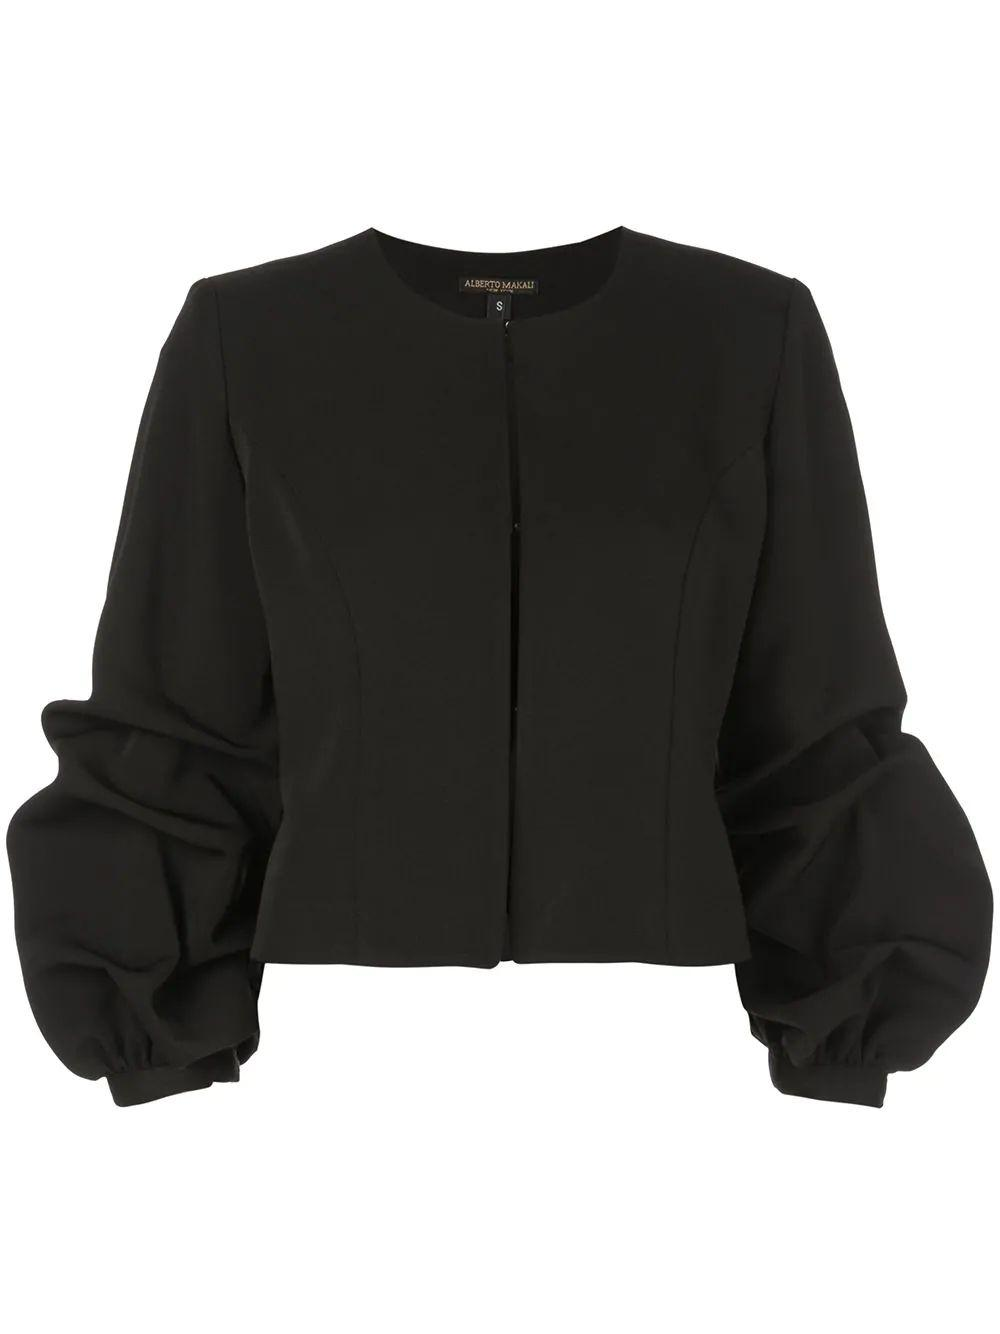 Jacket With Rouched Sleeve Item # 18222-F19